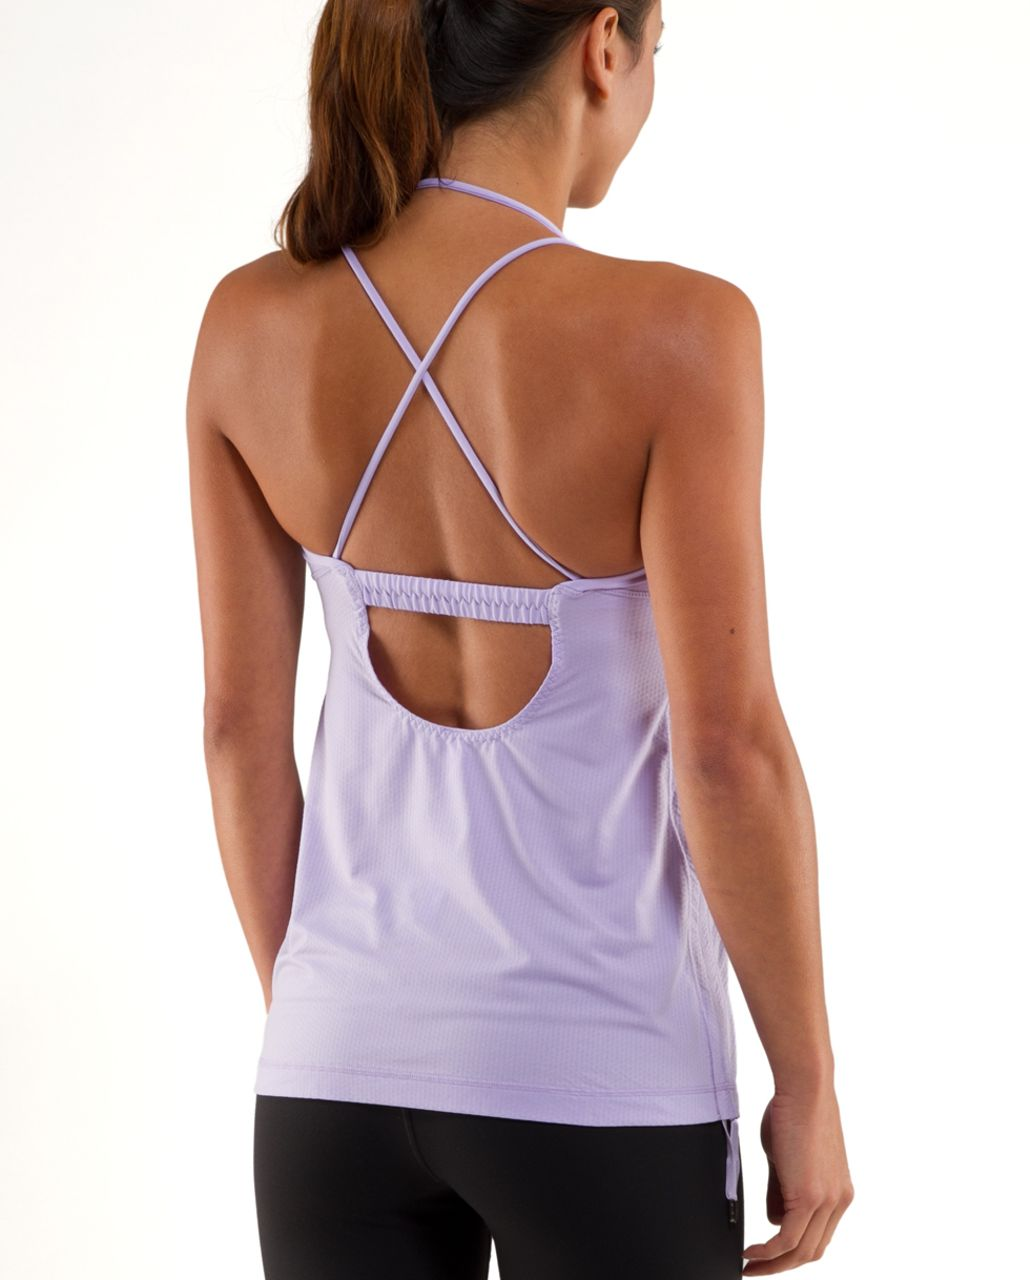 Lululemon Integrity Hot Tank - Lilac